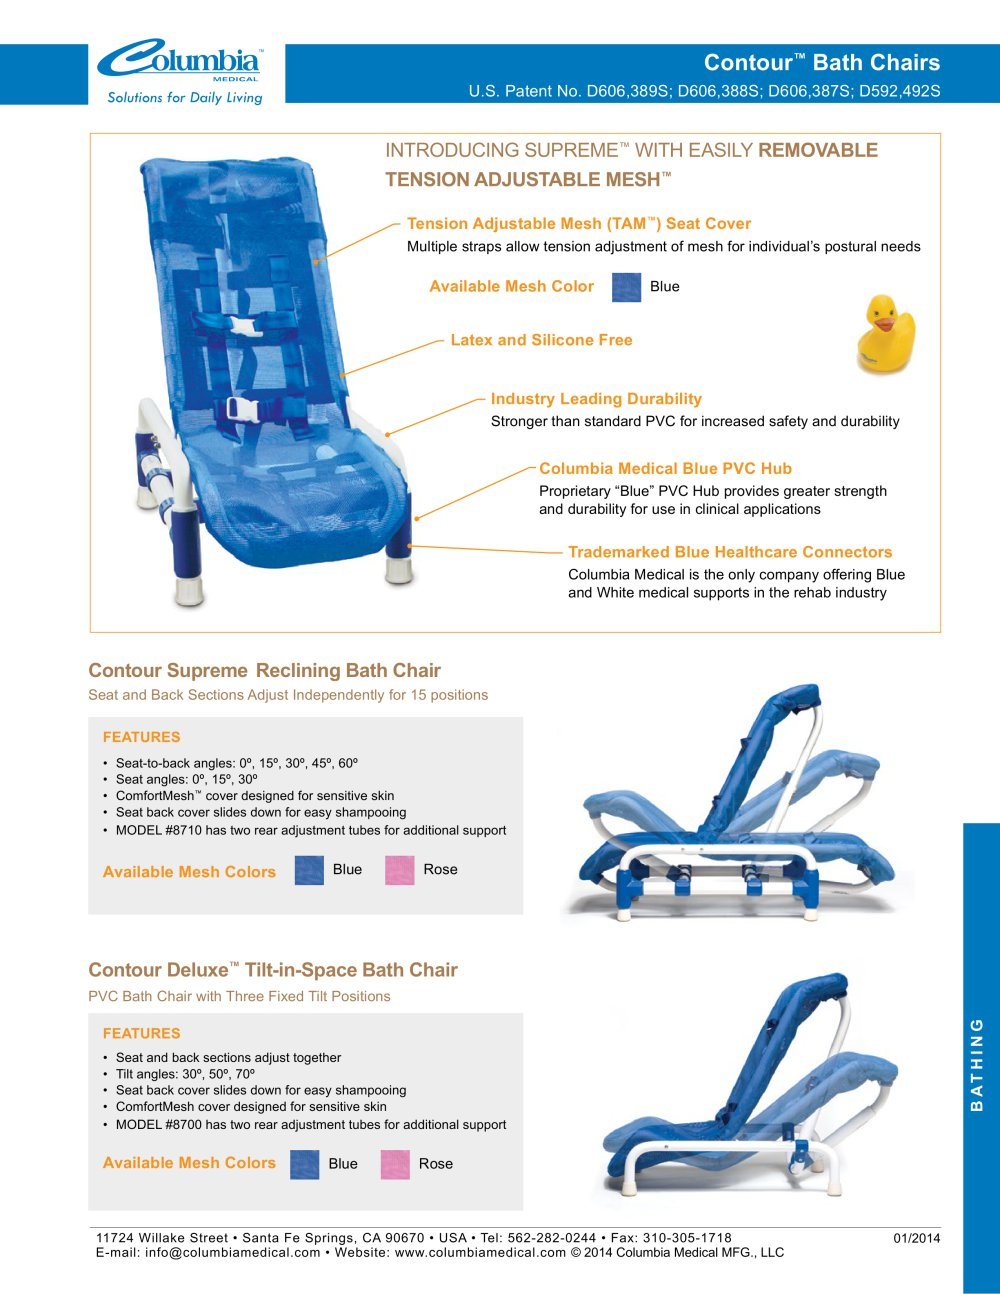 columbia medical bath chair reclining outdoor chairs canada contour inspired pdf catalogs technical 1 2 pages